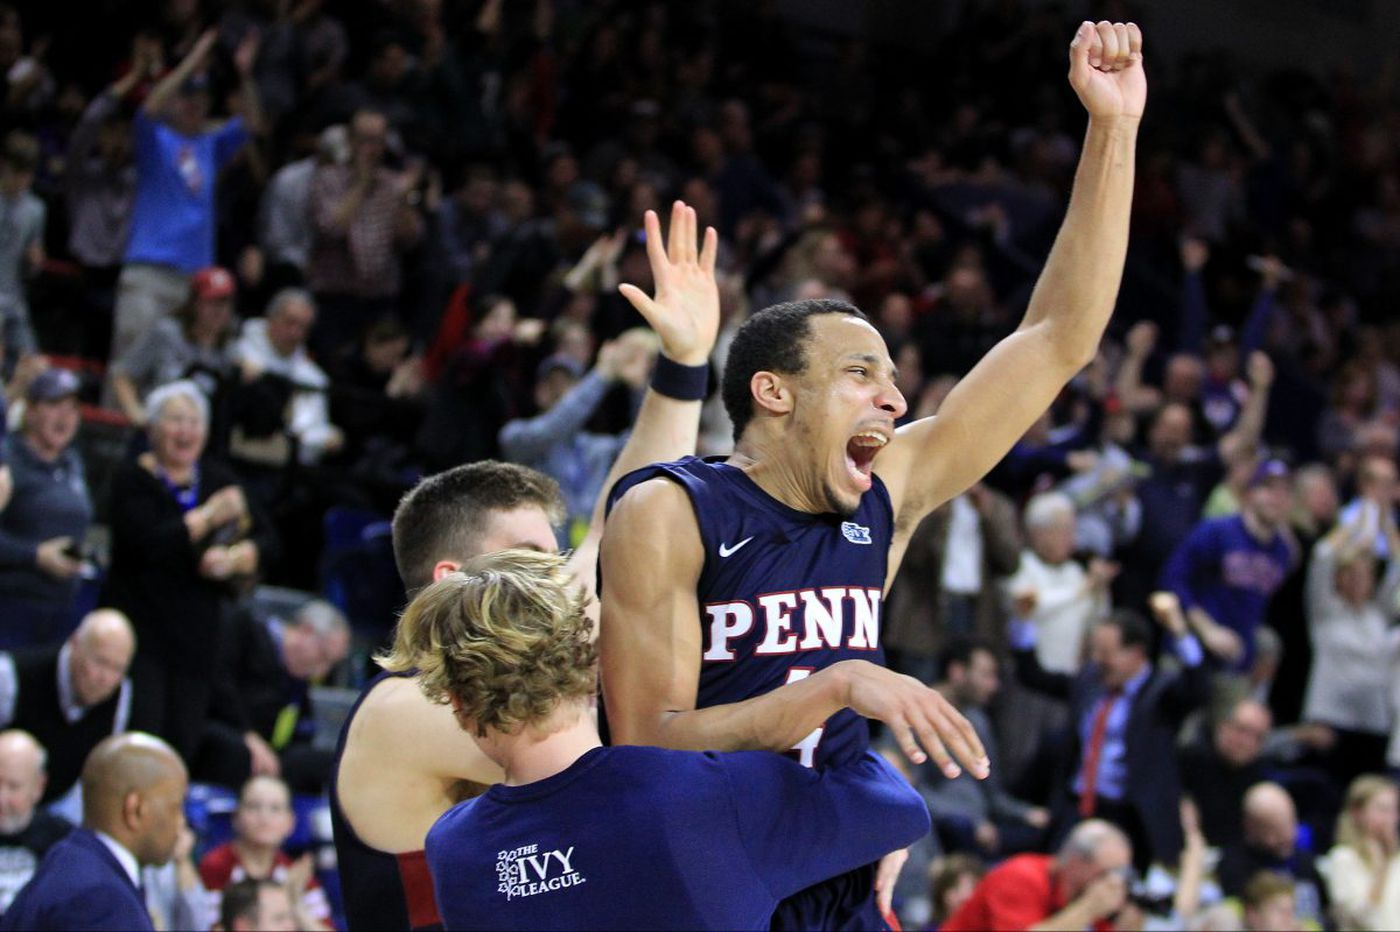 Penn beats Harvard to assume sole possession of first place